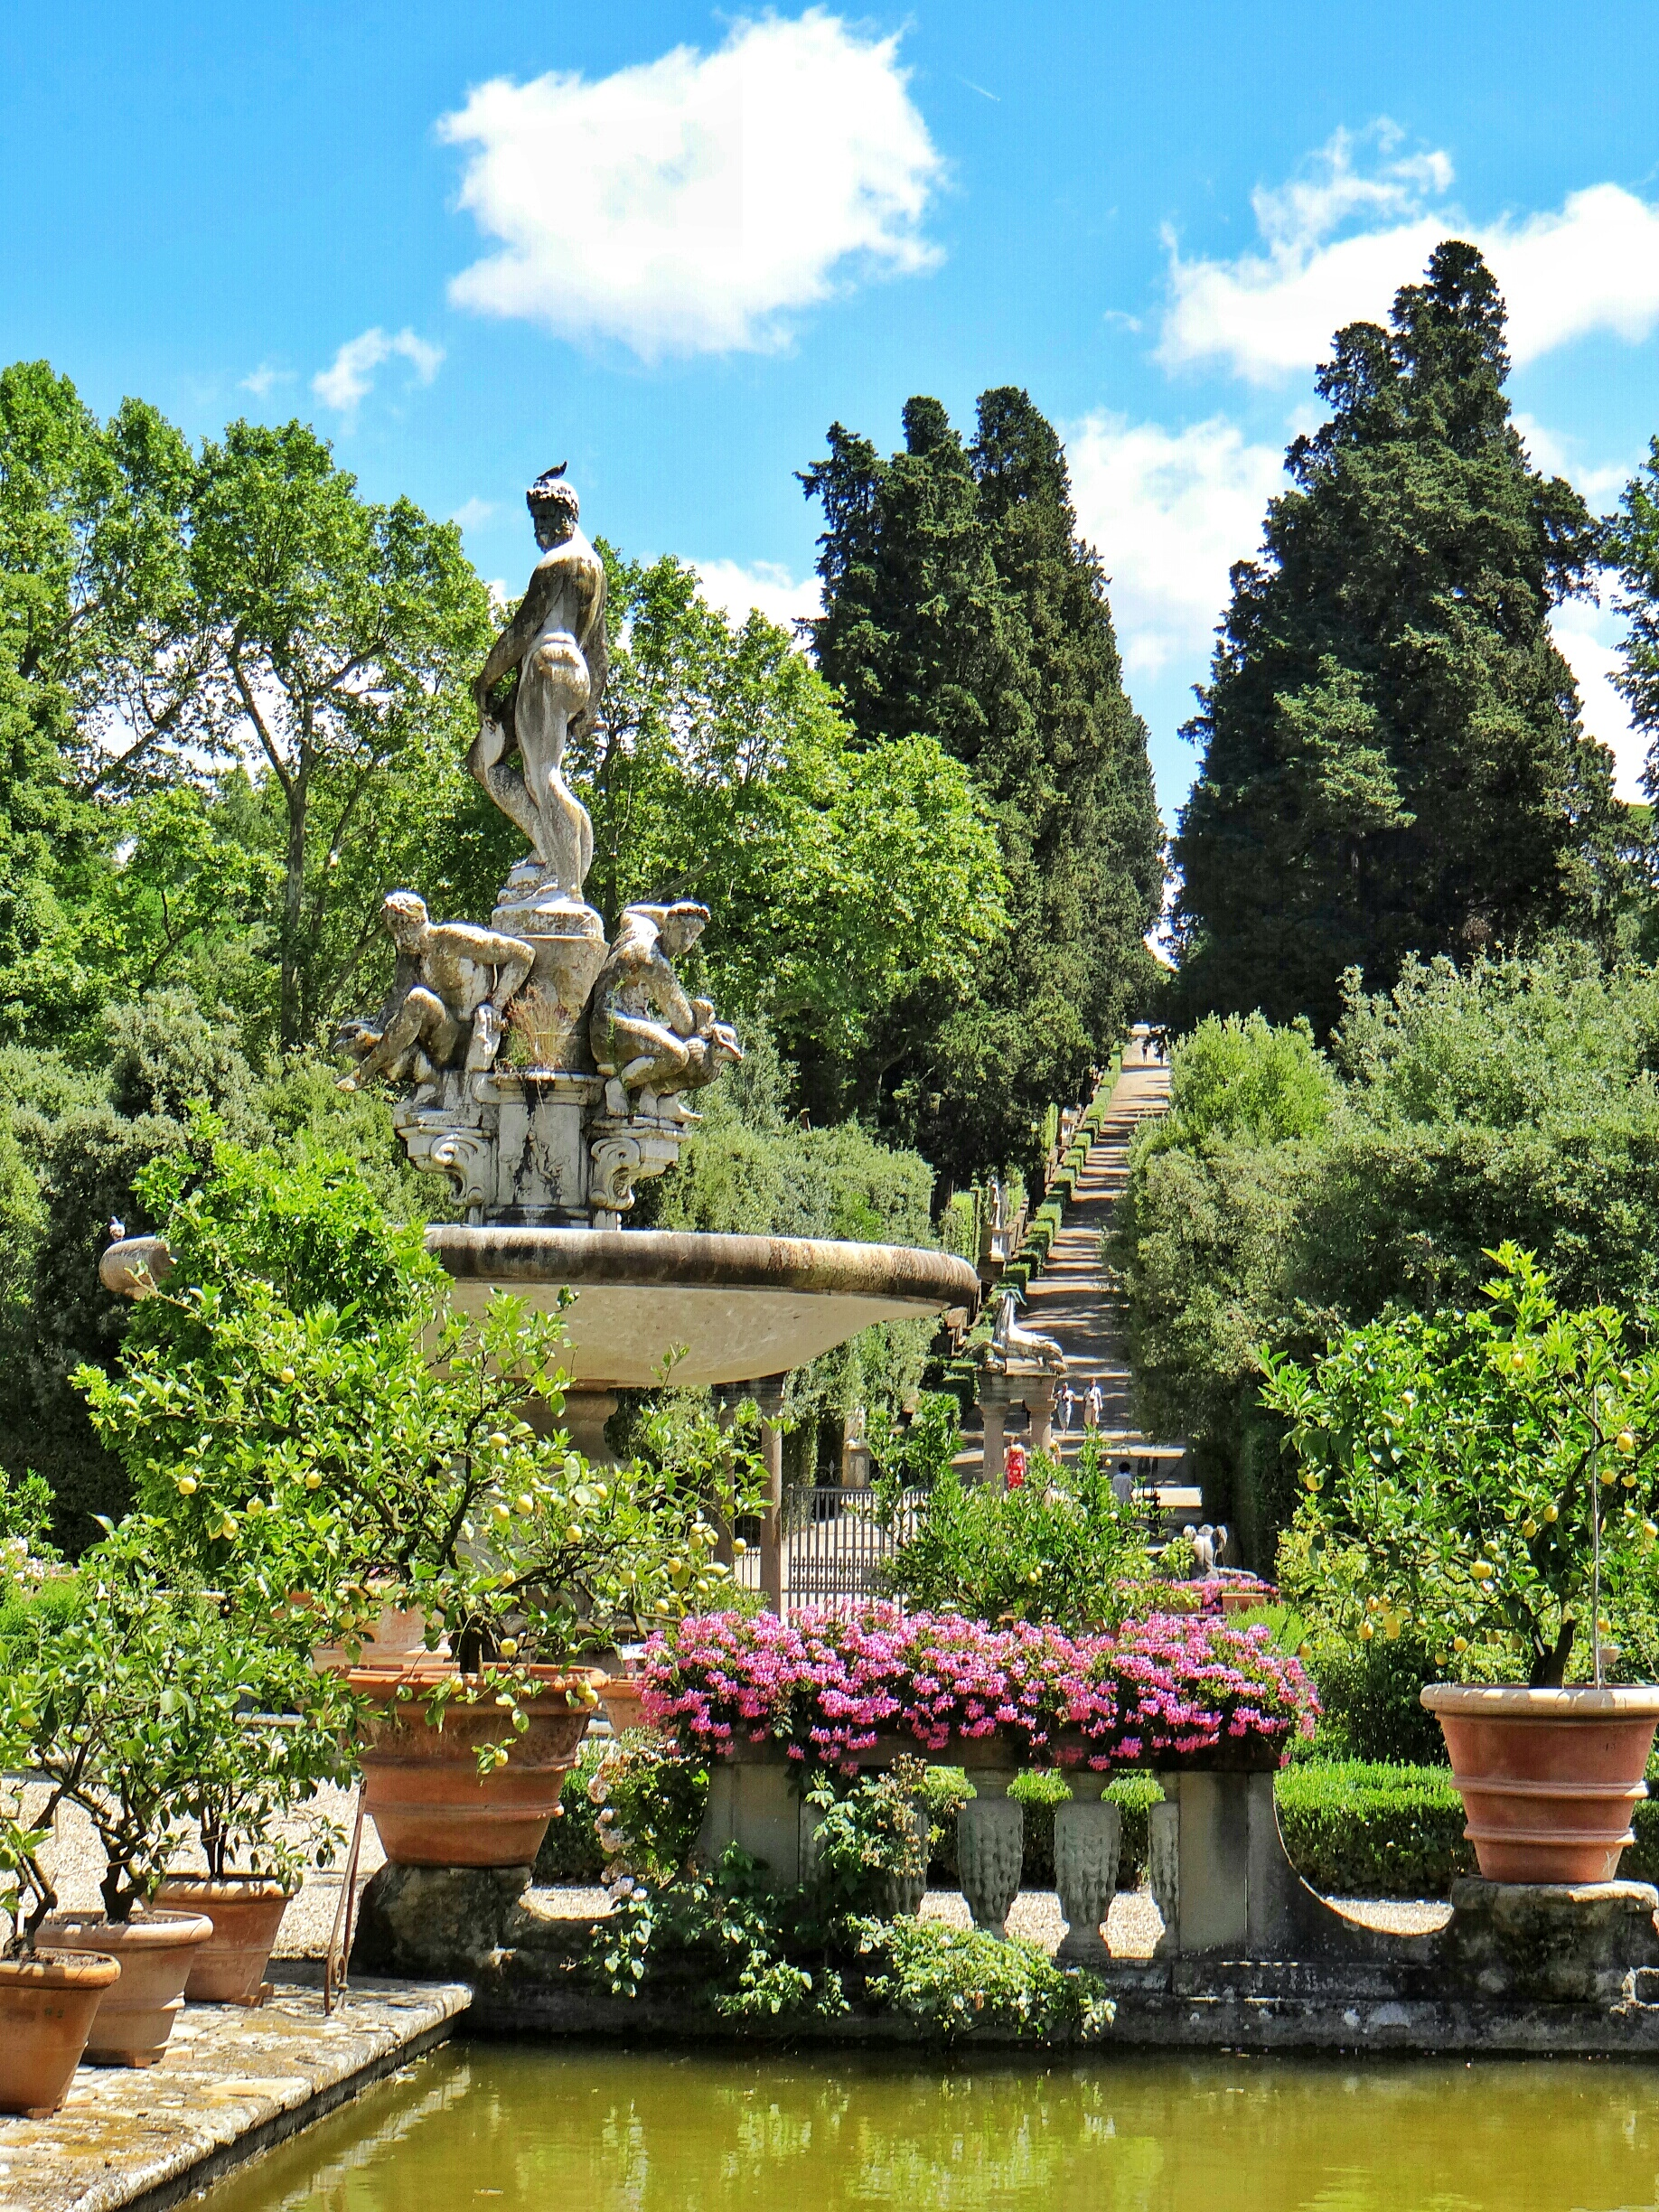 Boboli garden escape the crowds at firenze world wanderista for Giardino di boboli